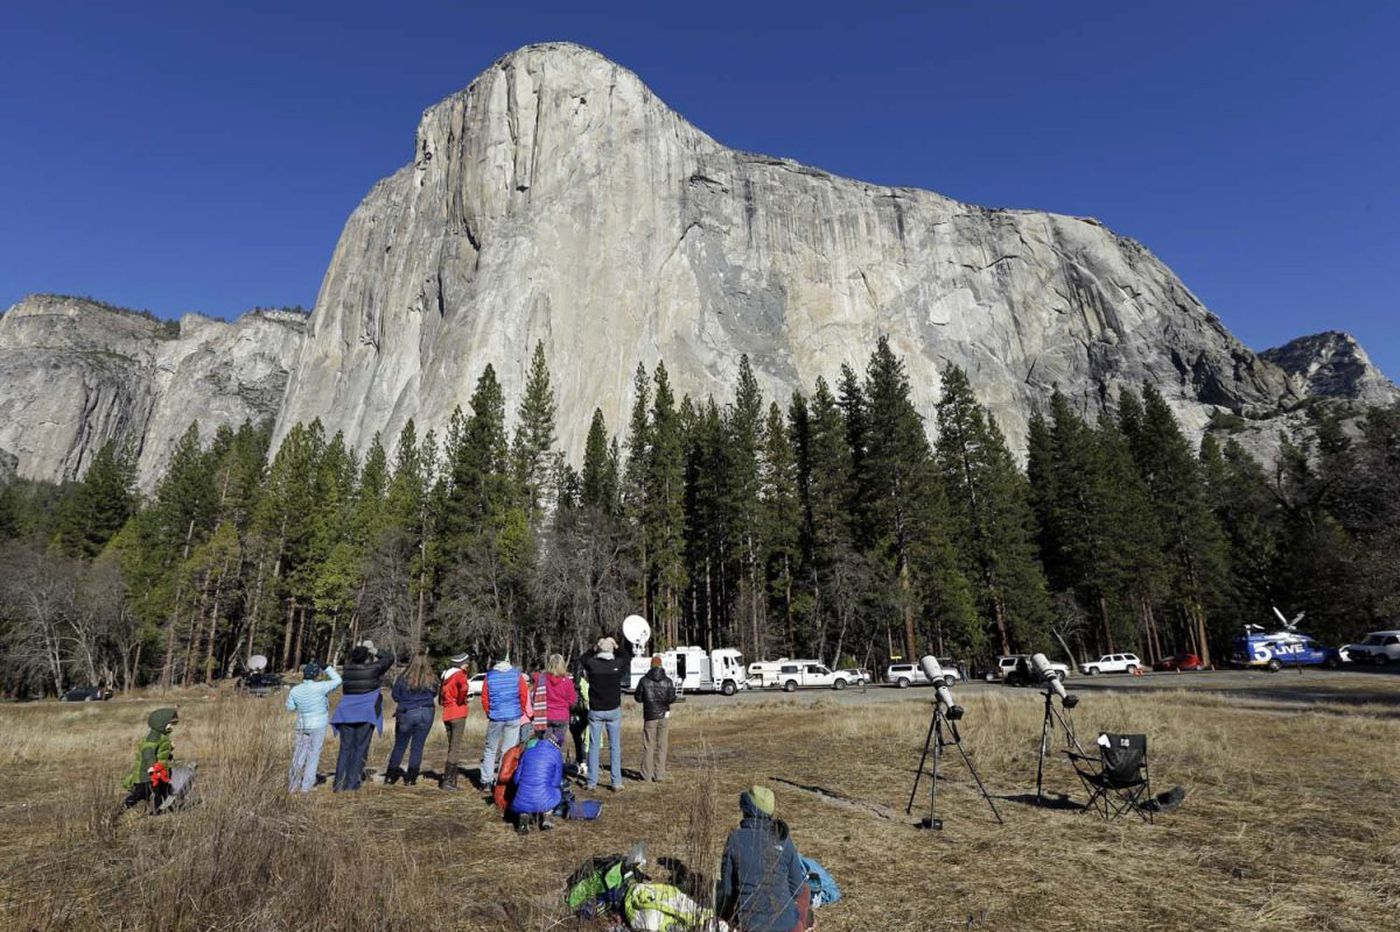 Interior dramatically reverses proposal to raise some national park entry fees to $70